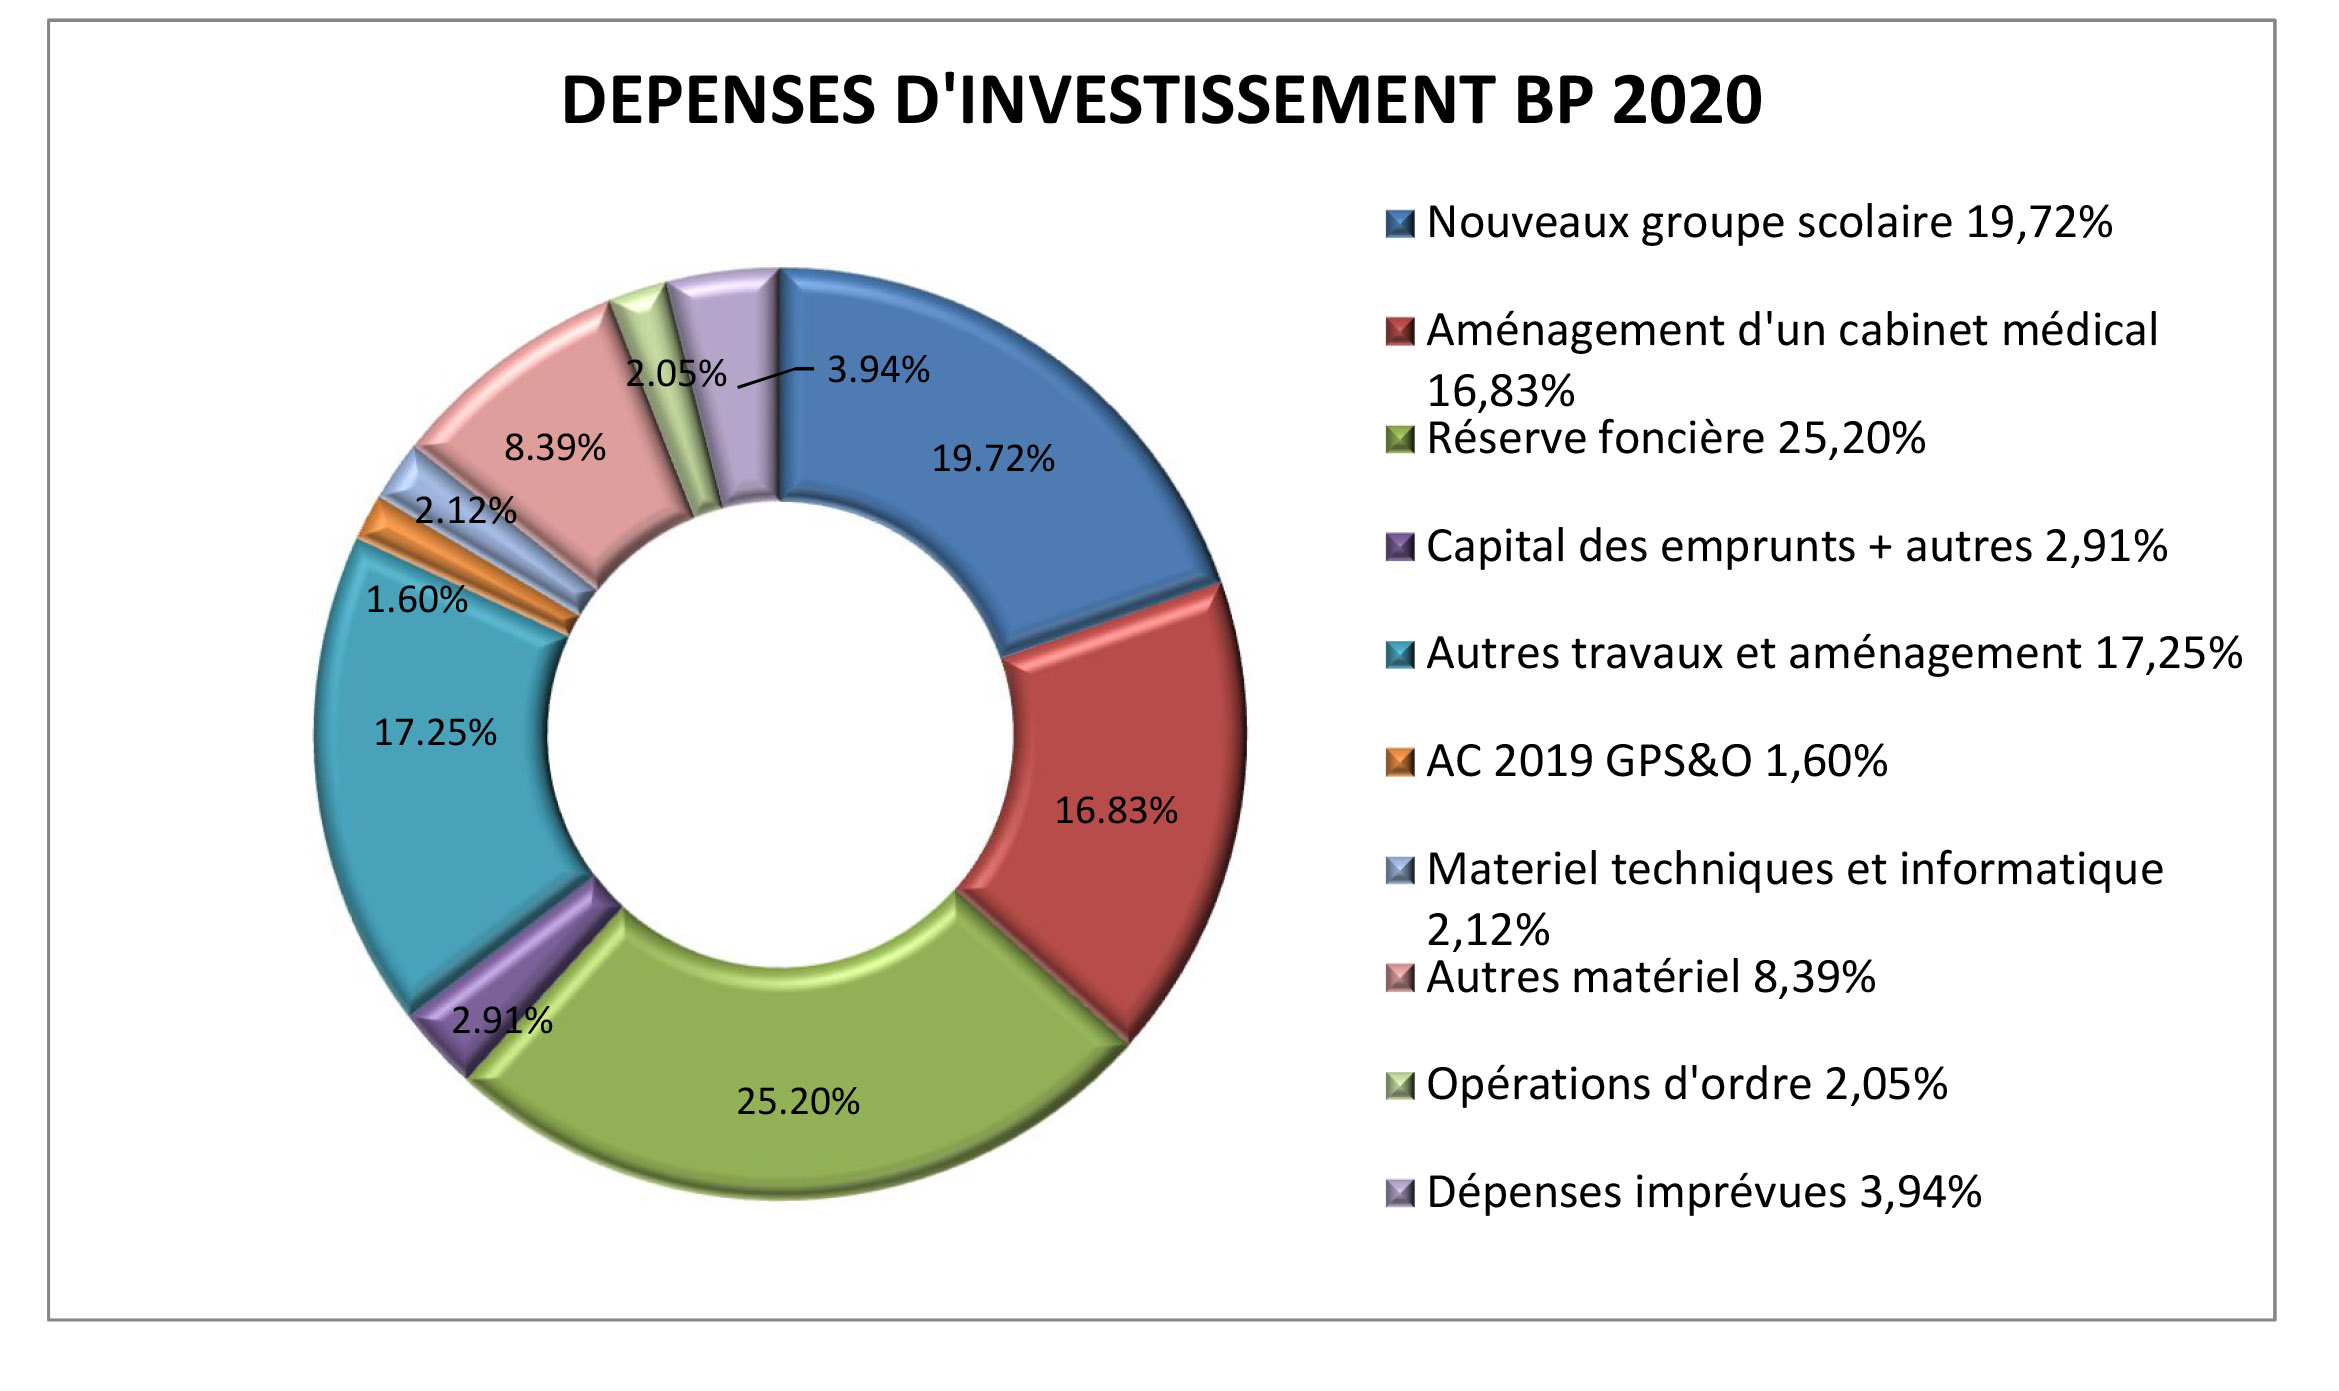 Depenses d'investissement BP 2020